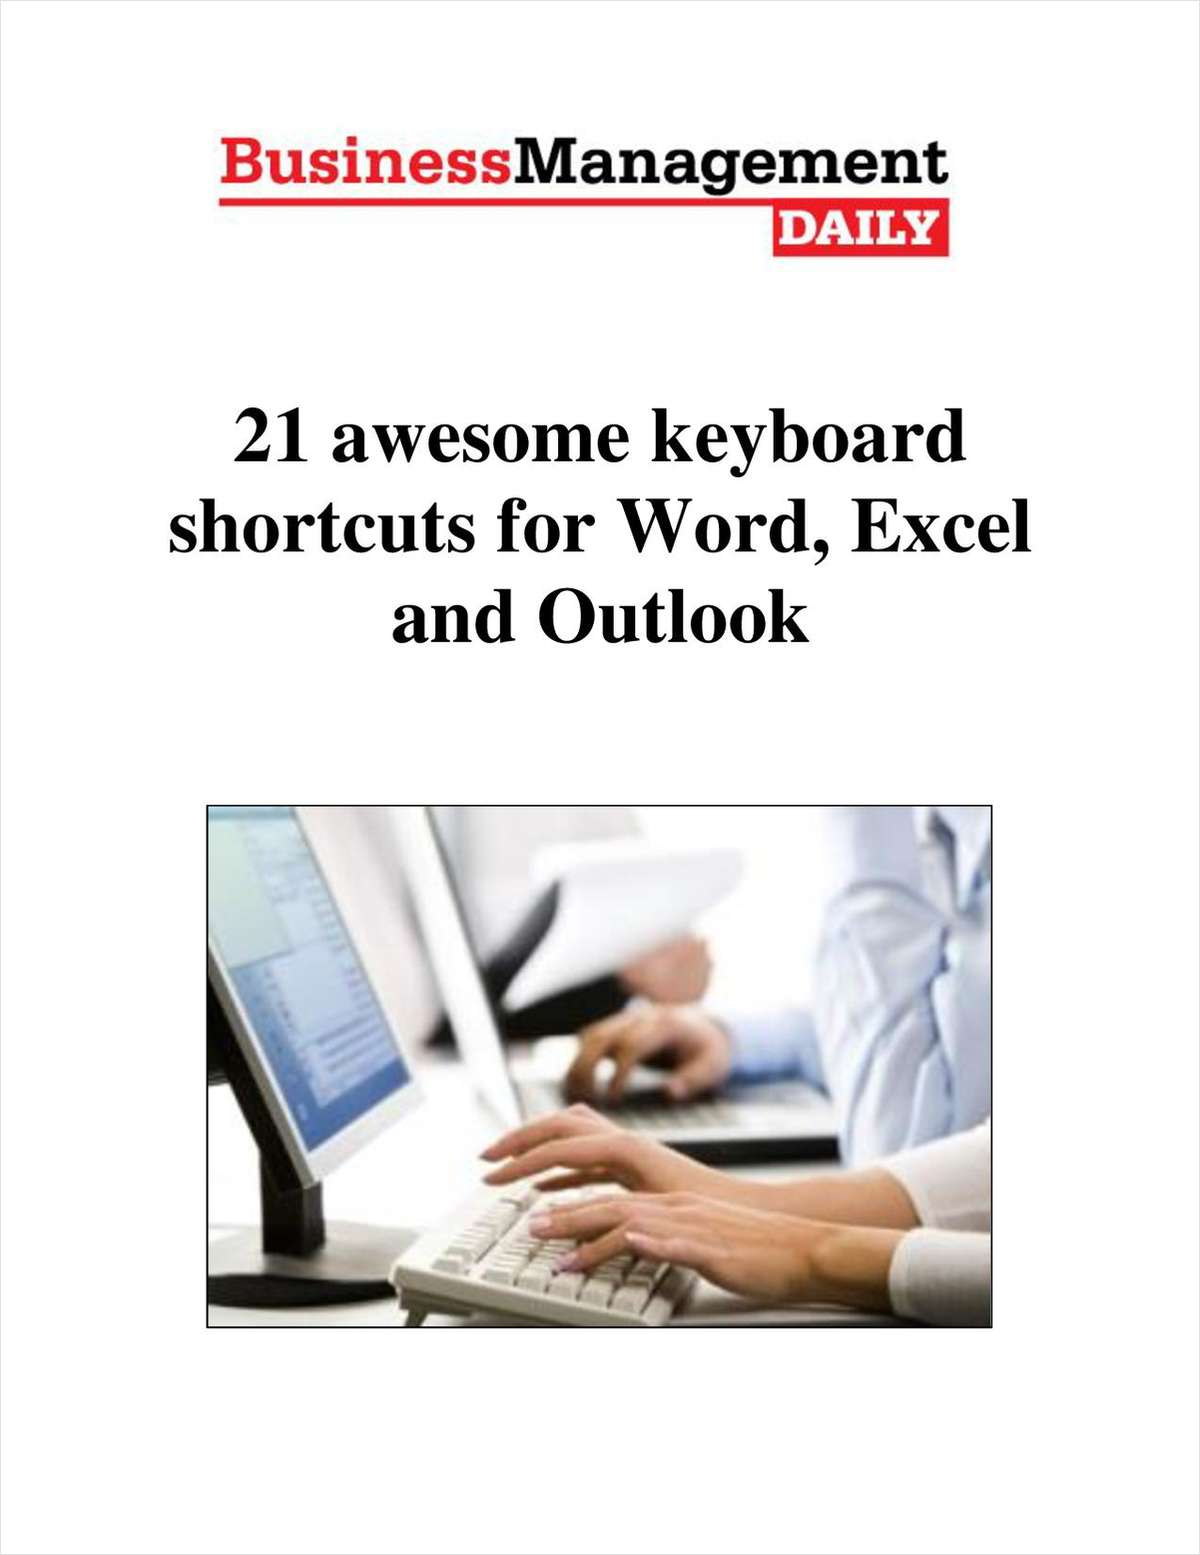 21 Awesome Keyboard Shortcuts for Word, Excel and Outlook